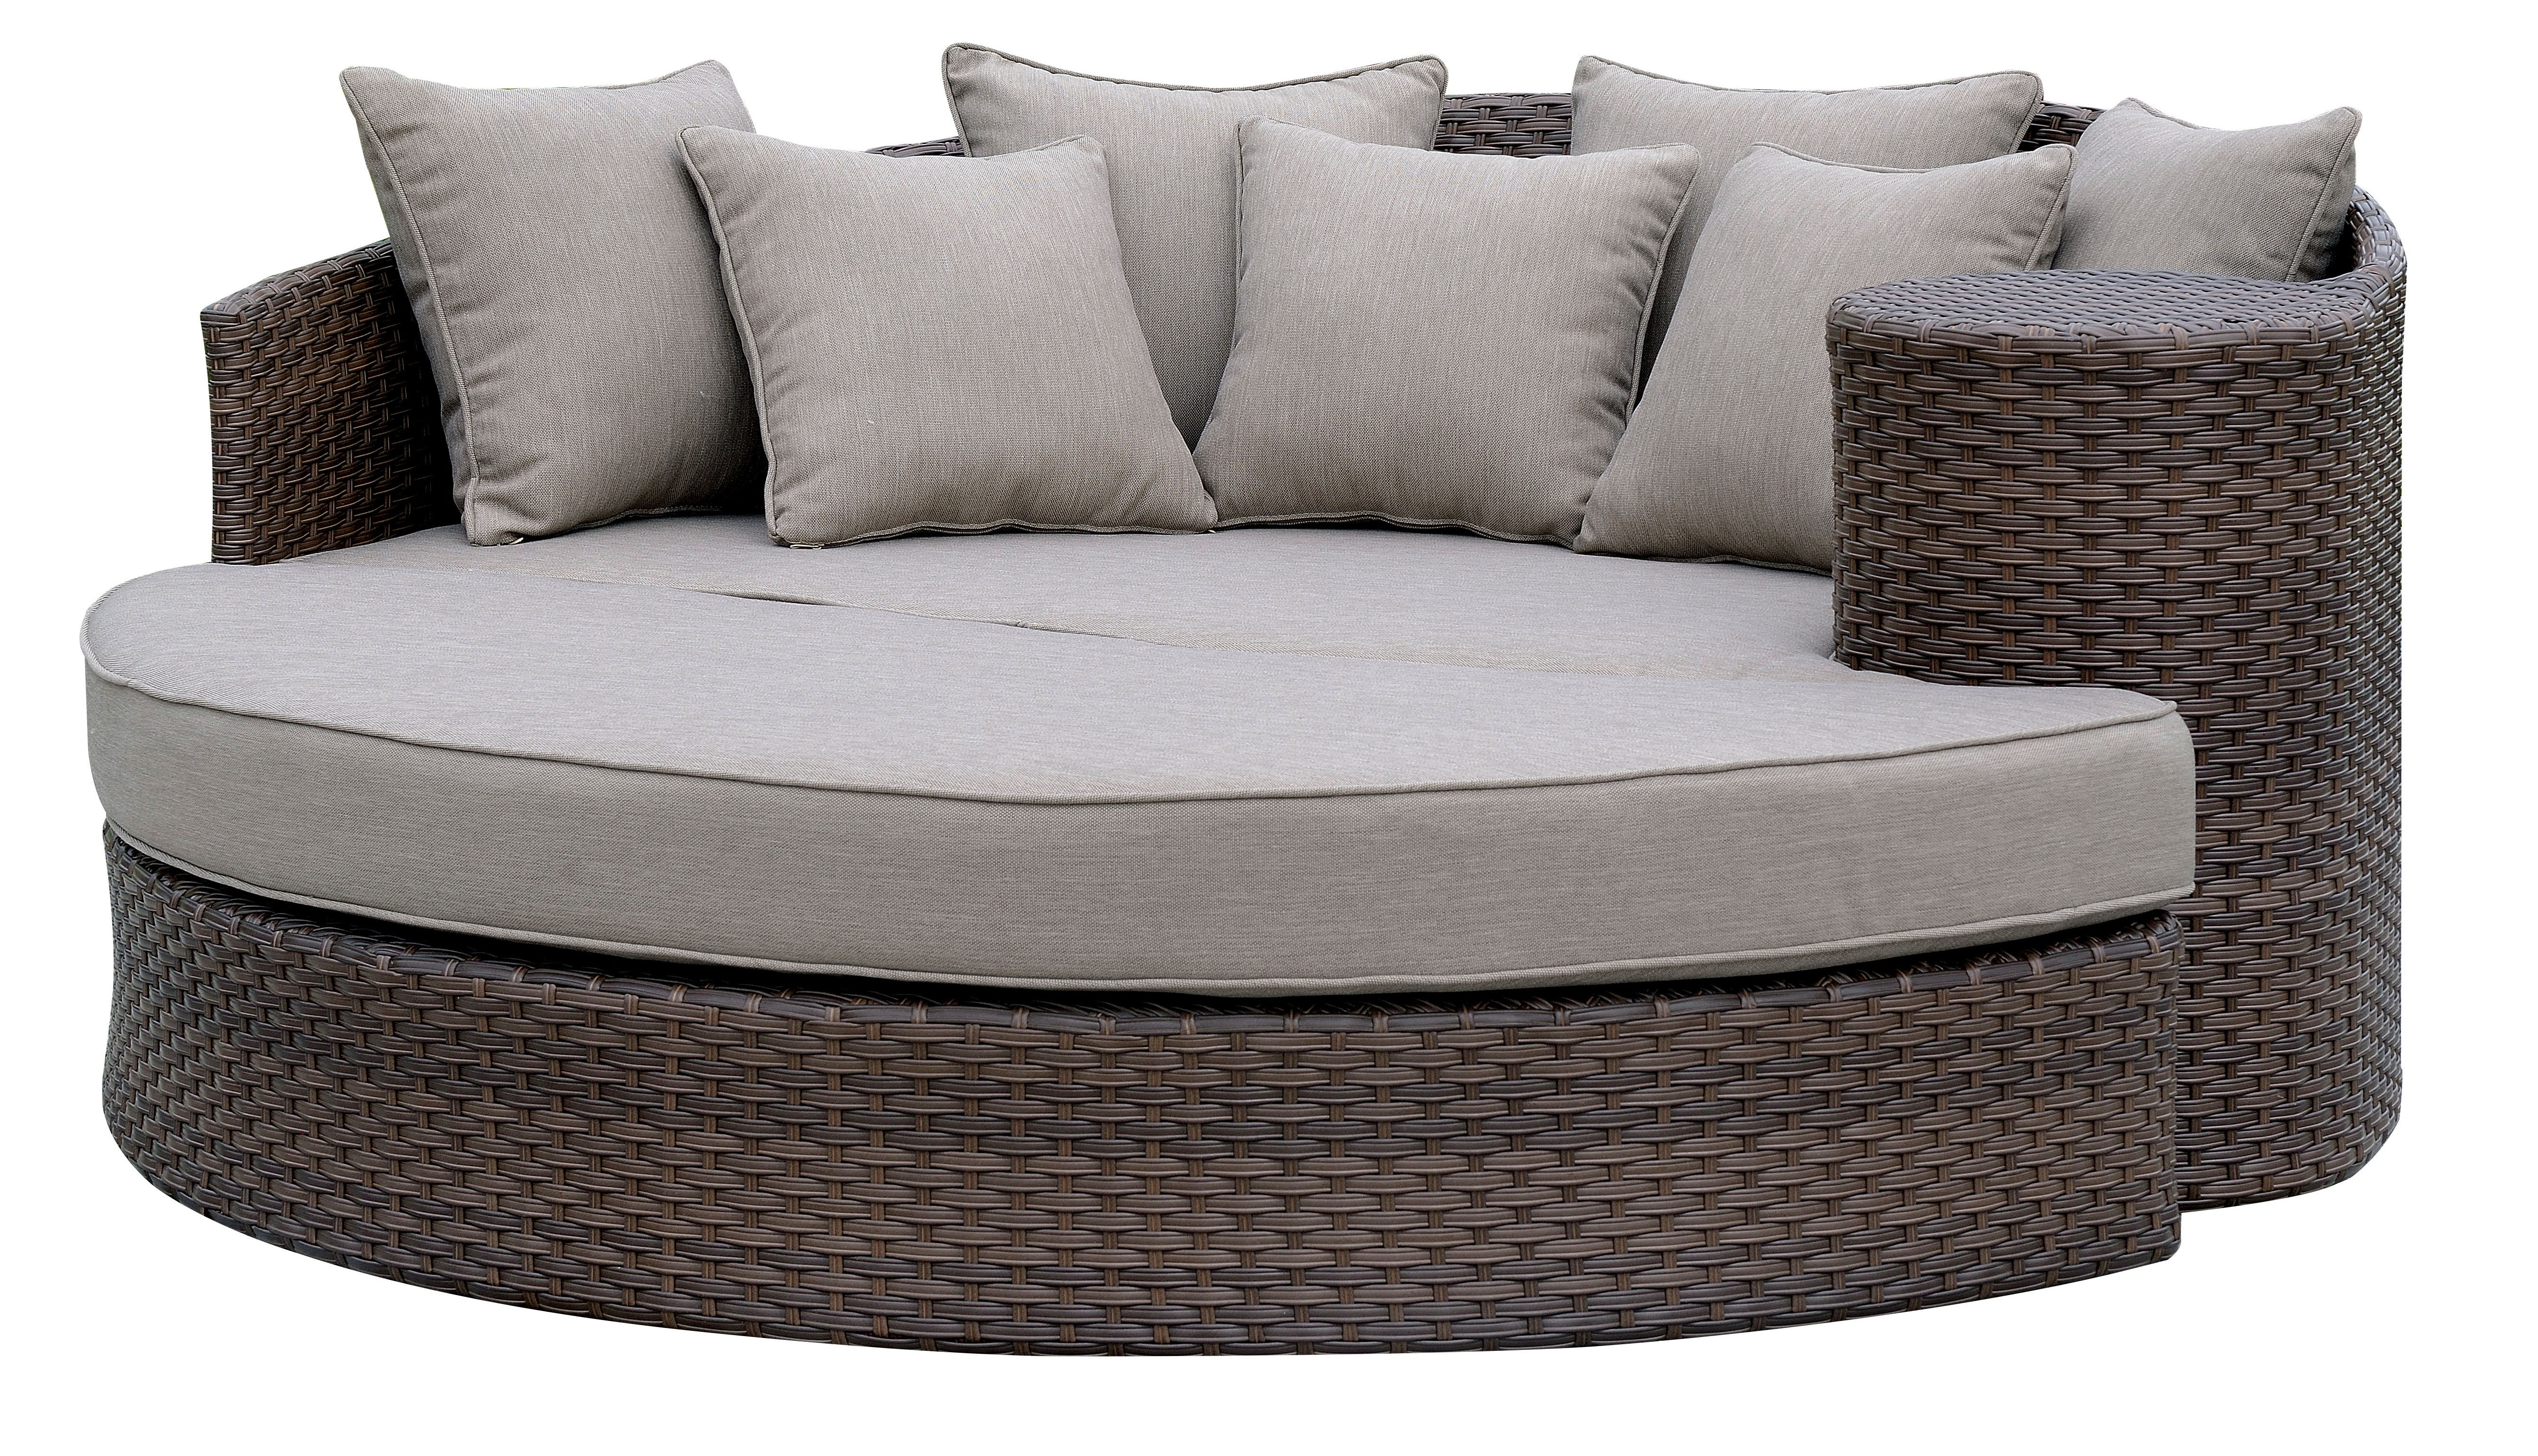 2019 Whyte Contemporary Patio Daybed With Cushions Within Hatley Patio Daybeds With Cushions (Gallery 12 of 20)